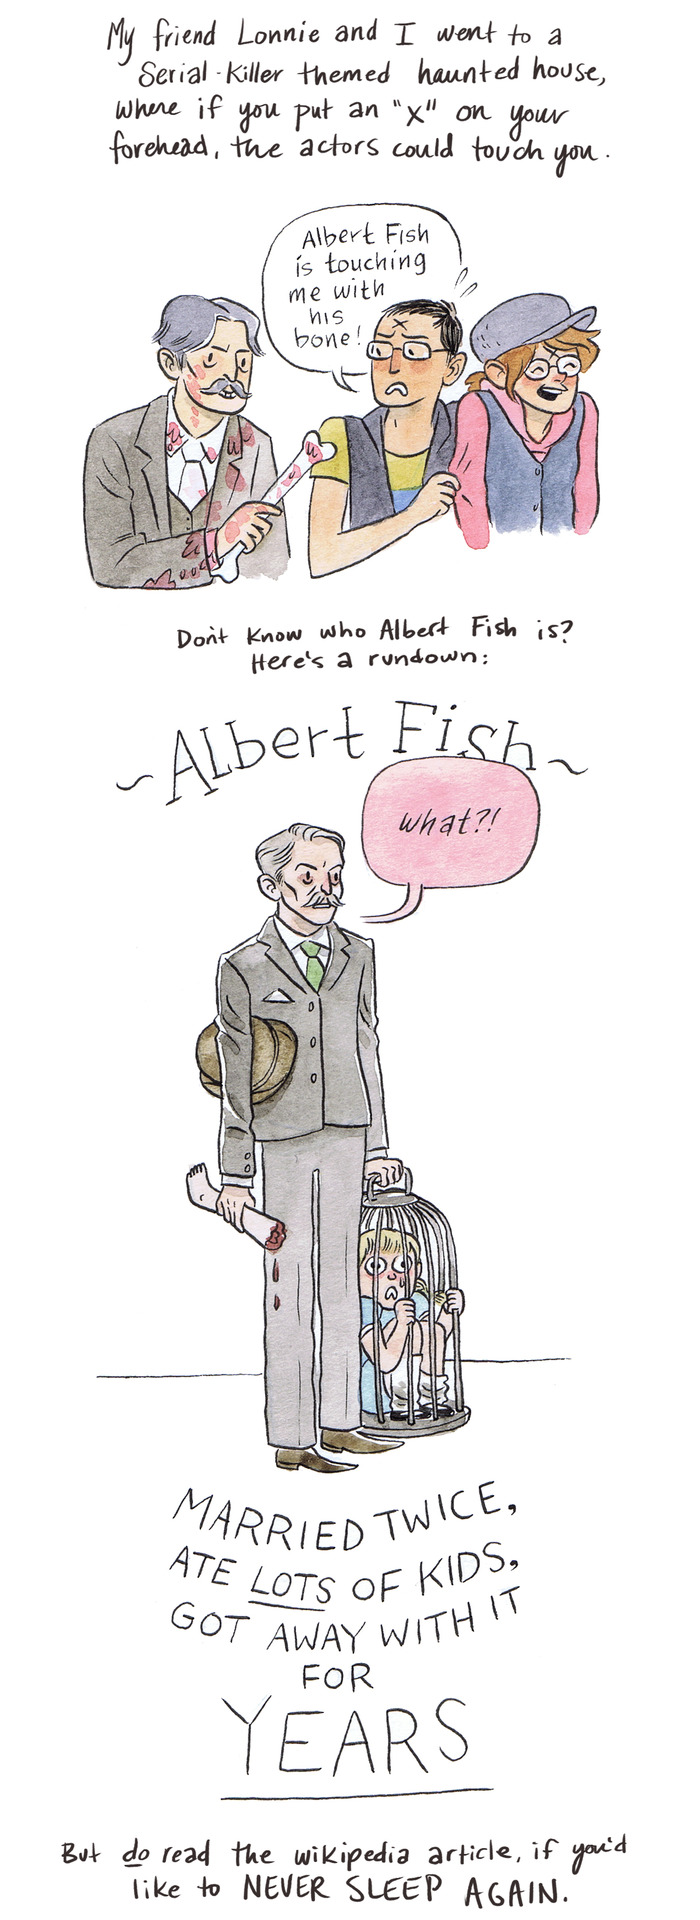 I've been fascinated by serial killers since one time in elementary school, my teacher told me I had serial killer handwriting. Joke's on her, 'cause now I do it for a living! Handwriting, that is… Not… Serial killering. Anyway, Albert Fish. I found this doodle while going through my sketchbook, and I thought I'd share how utterly utterly disturbing ol' Albert is. Enjoy!